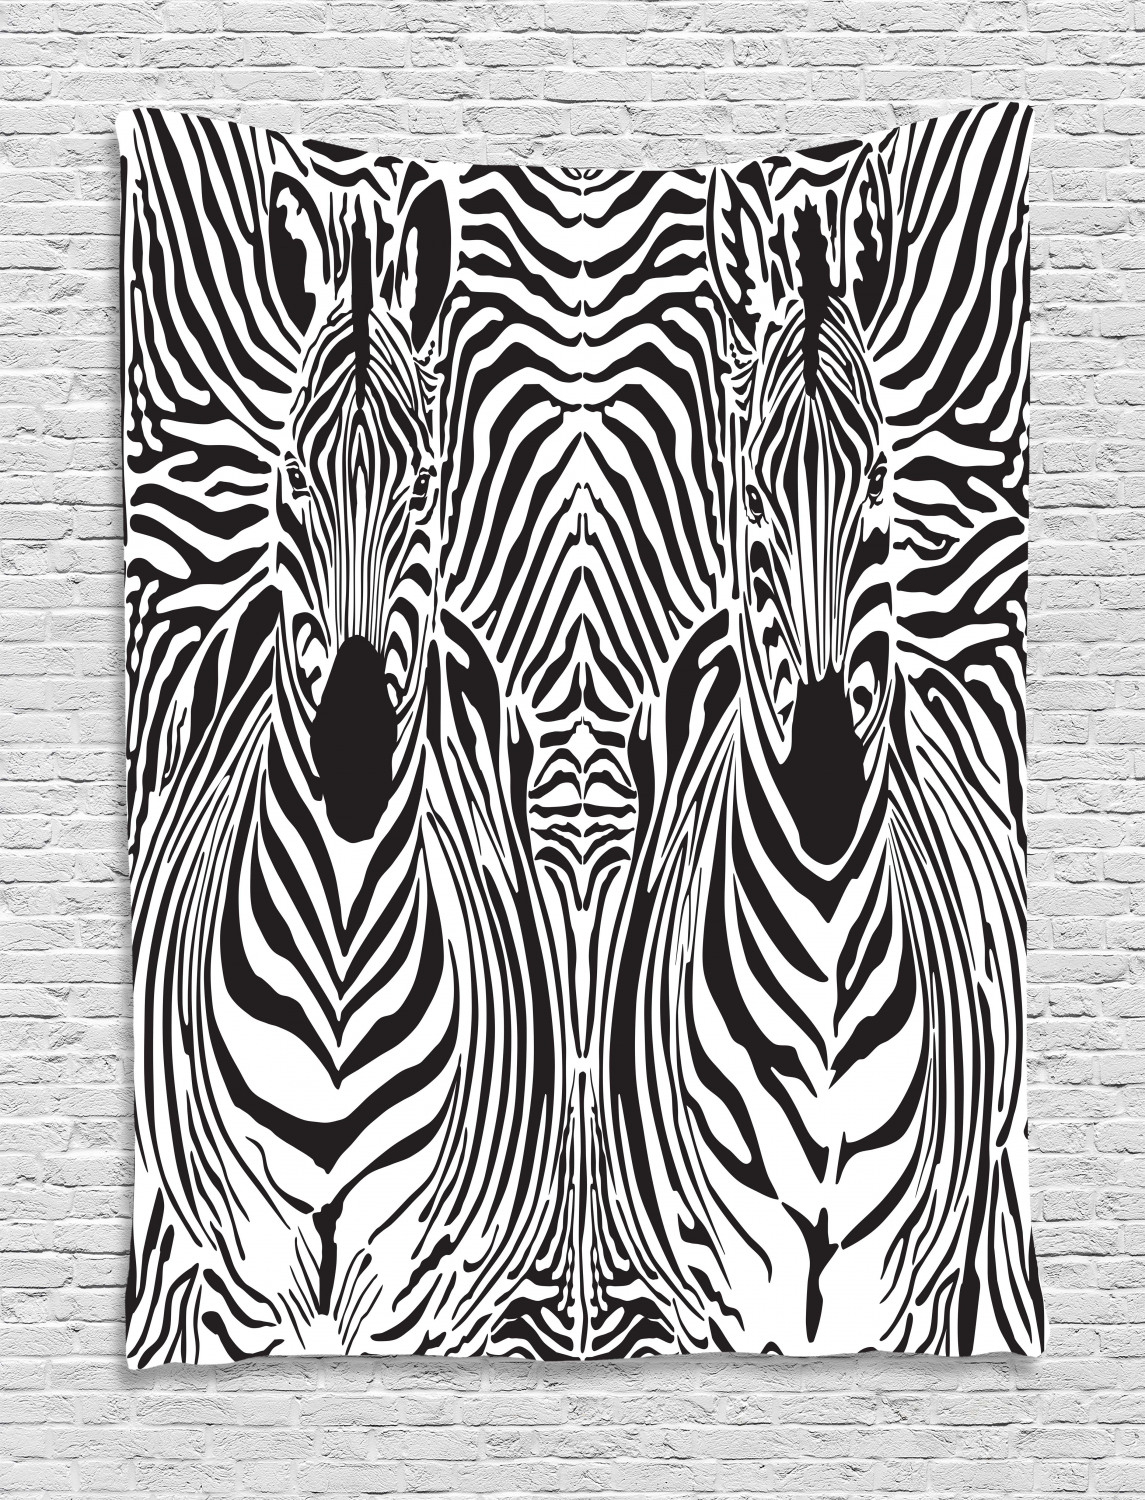 Zebra Print Decor Wall Hanging Tapestry, Illustration Pattern Zebras Skins Background Blended Over Zebra Body Heads, Bedroom Living Room Dorm Throughout Most Recent Blended Fabric In His Tapestries And Wall Hangings (View 14 of 20)